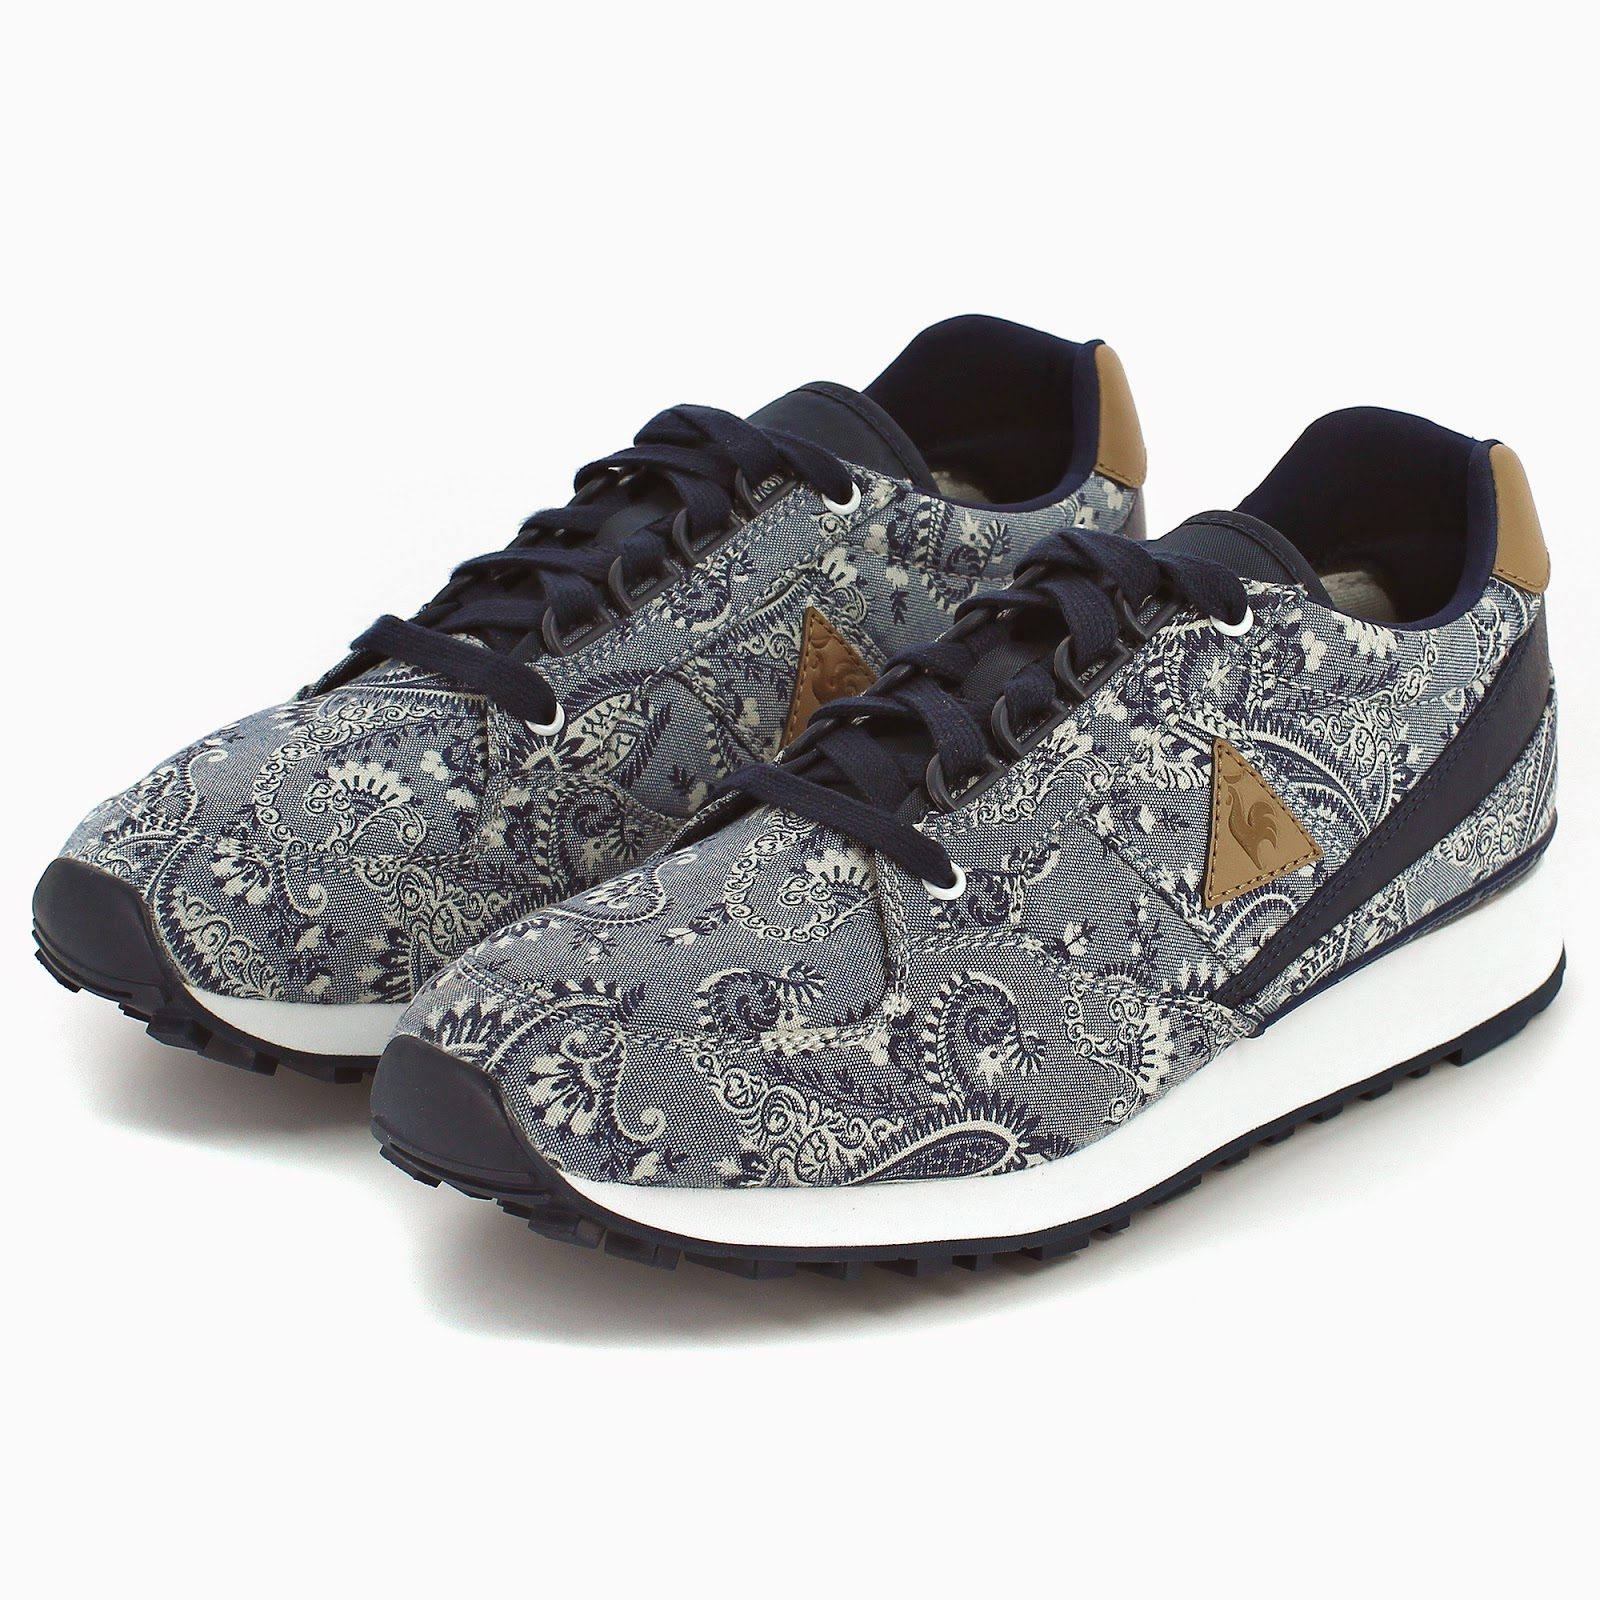 Le Coq Sportif, Liberty Arts Fabric, Eclat, Lagache, LCS R900, LCS R1400, sneakers, calzado, sportwear, sportstyle, Suits and Shirts,